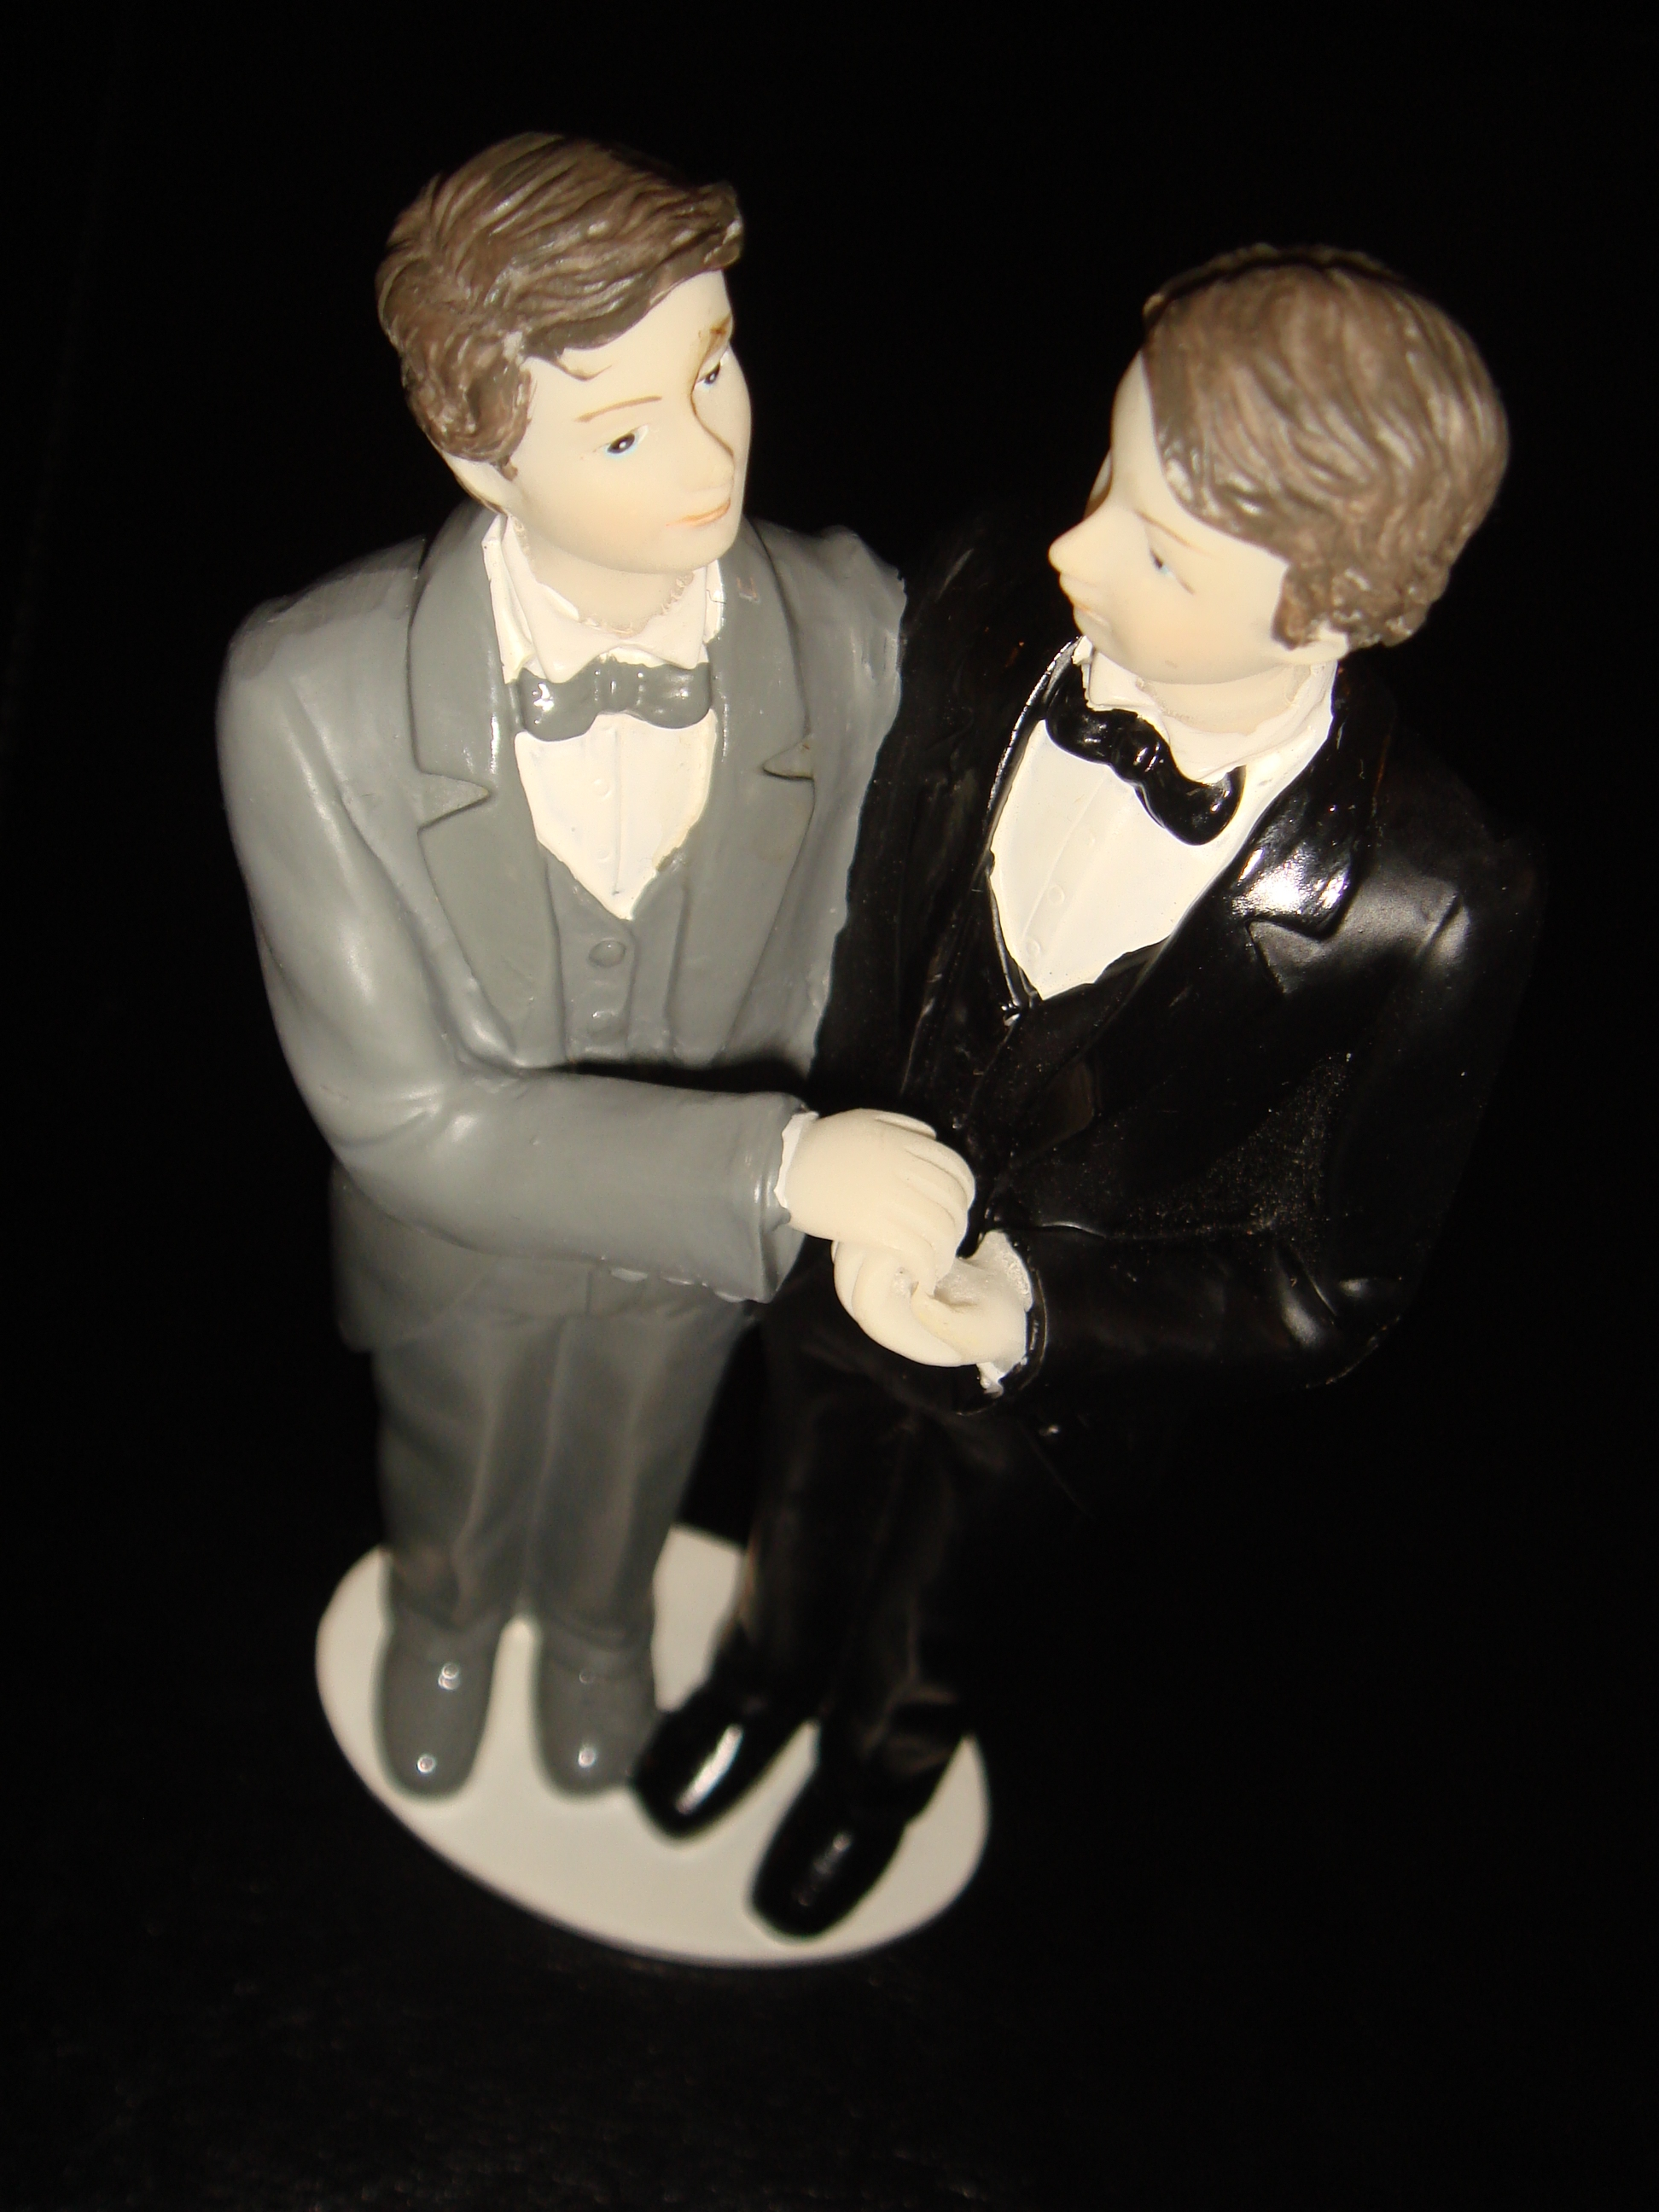 Gay couple for wedding cake by Stefano Bolognini